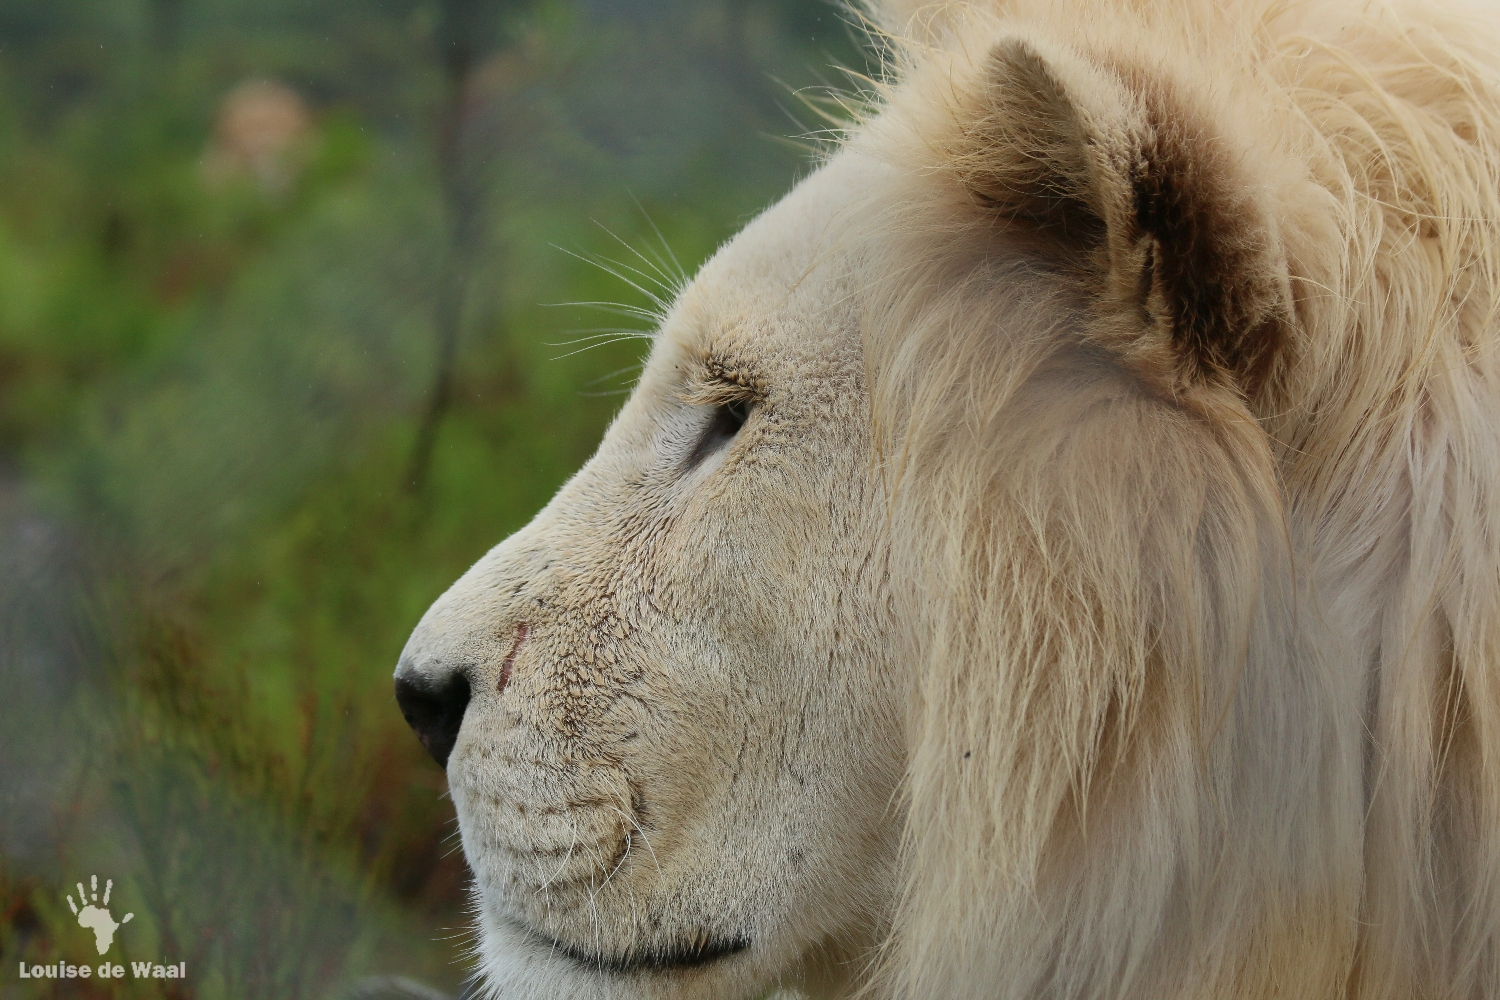 Neptune the rescued white lion at Panthera Africa sanctuary, Stanford